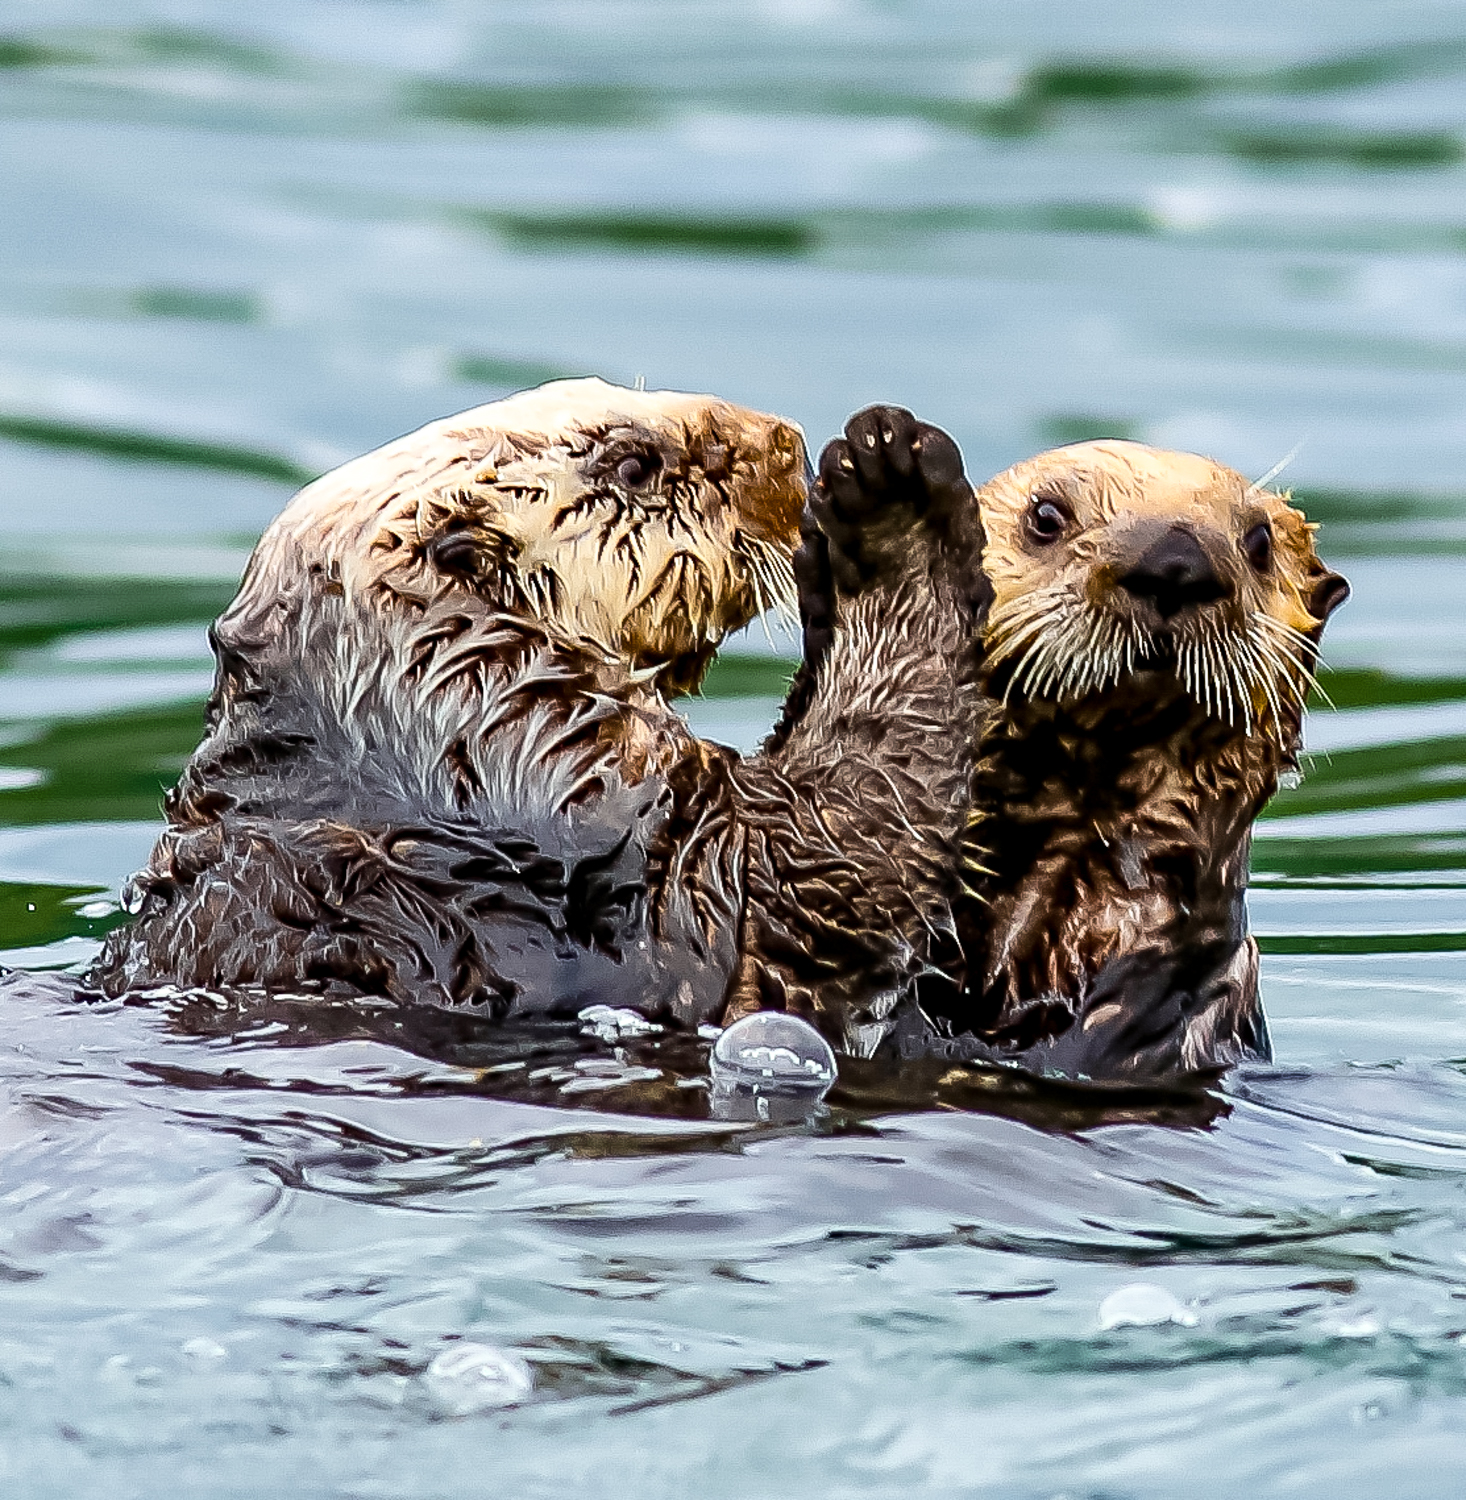 Sea otters telling secrets.